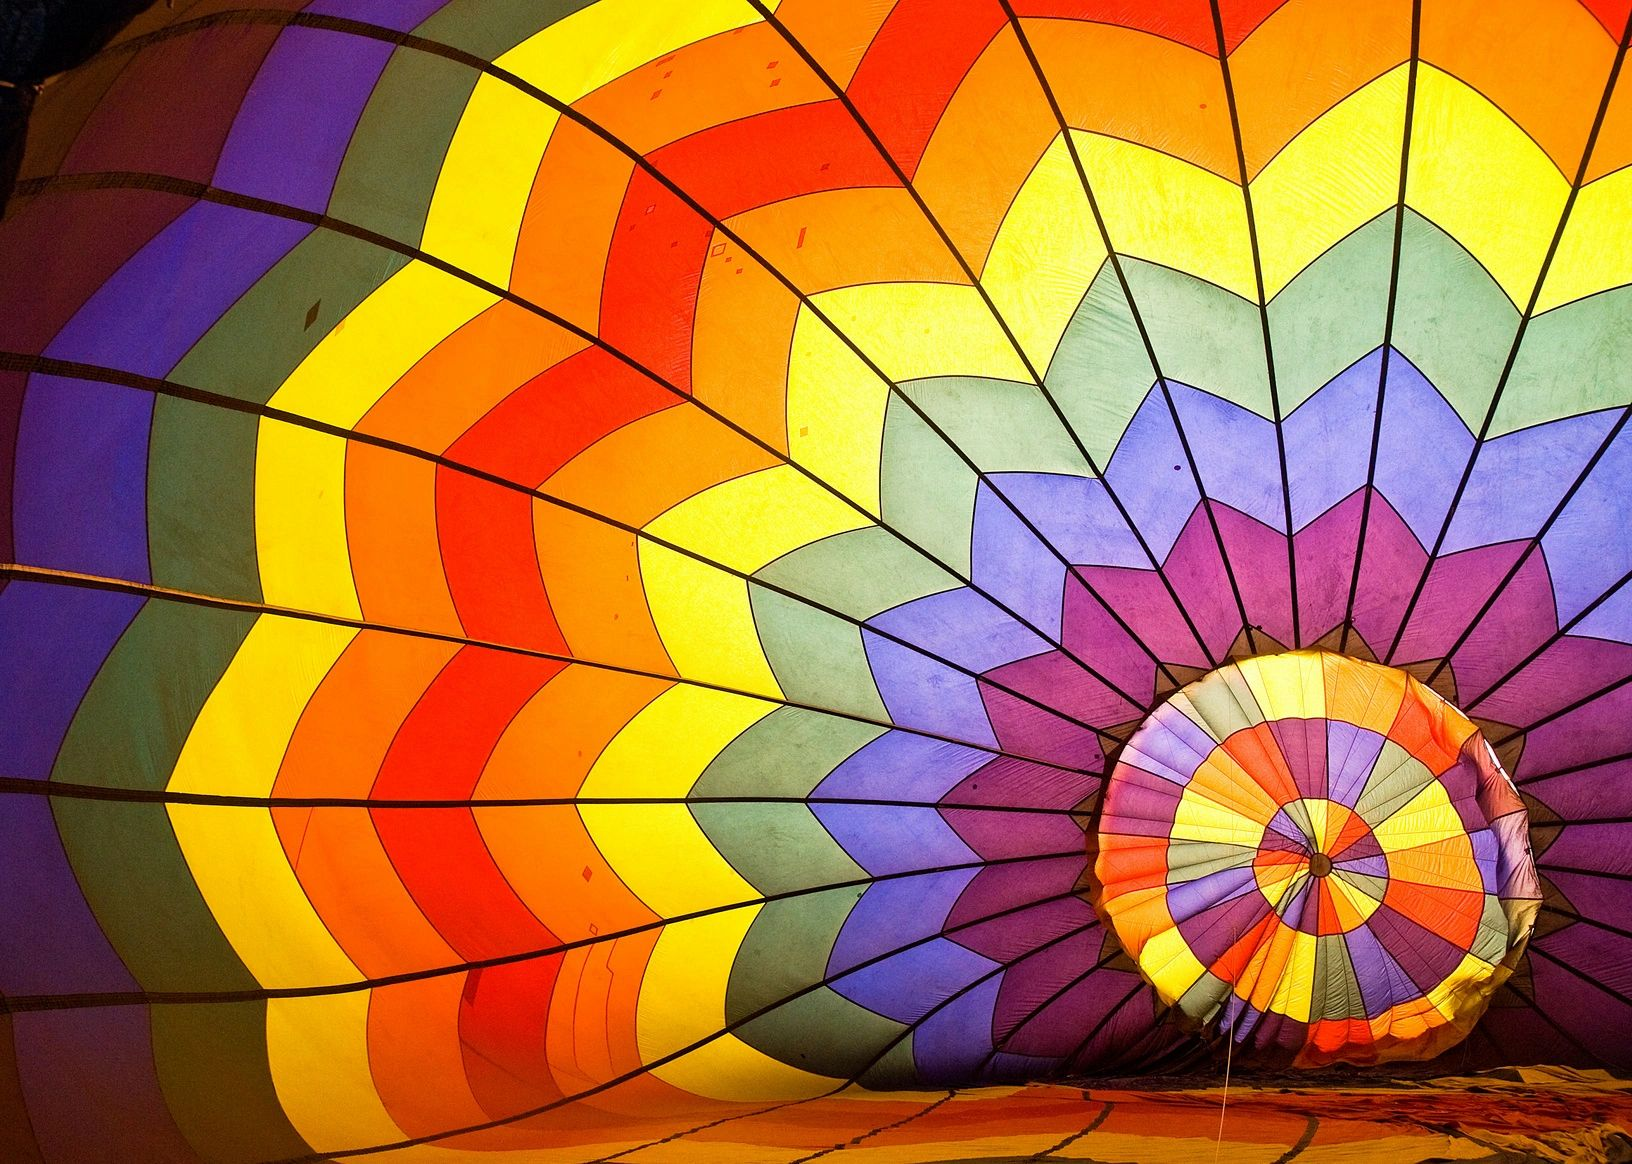 Parachute close up